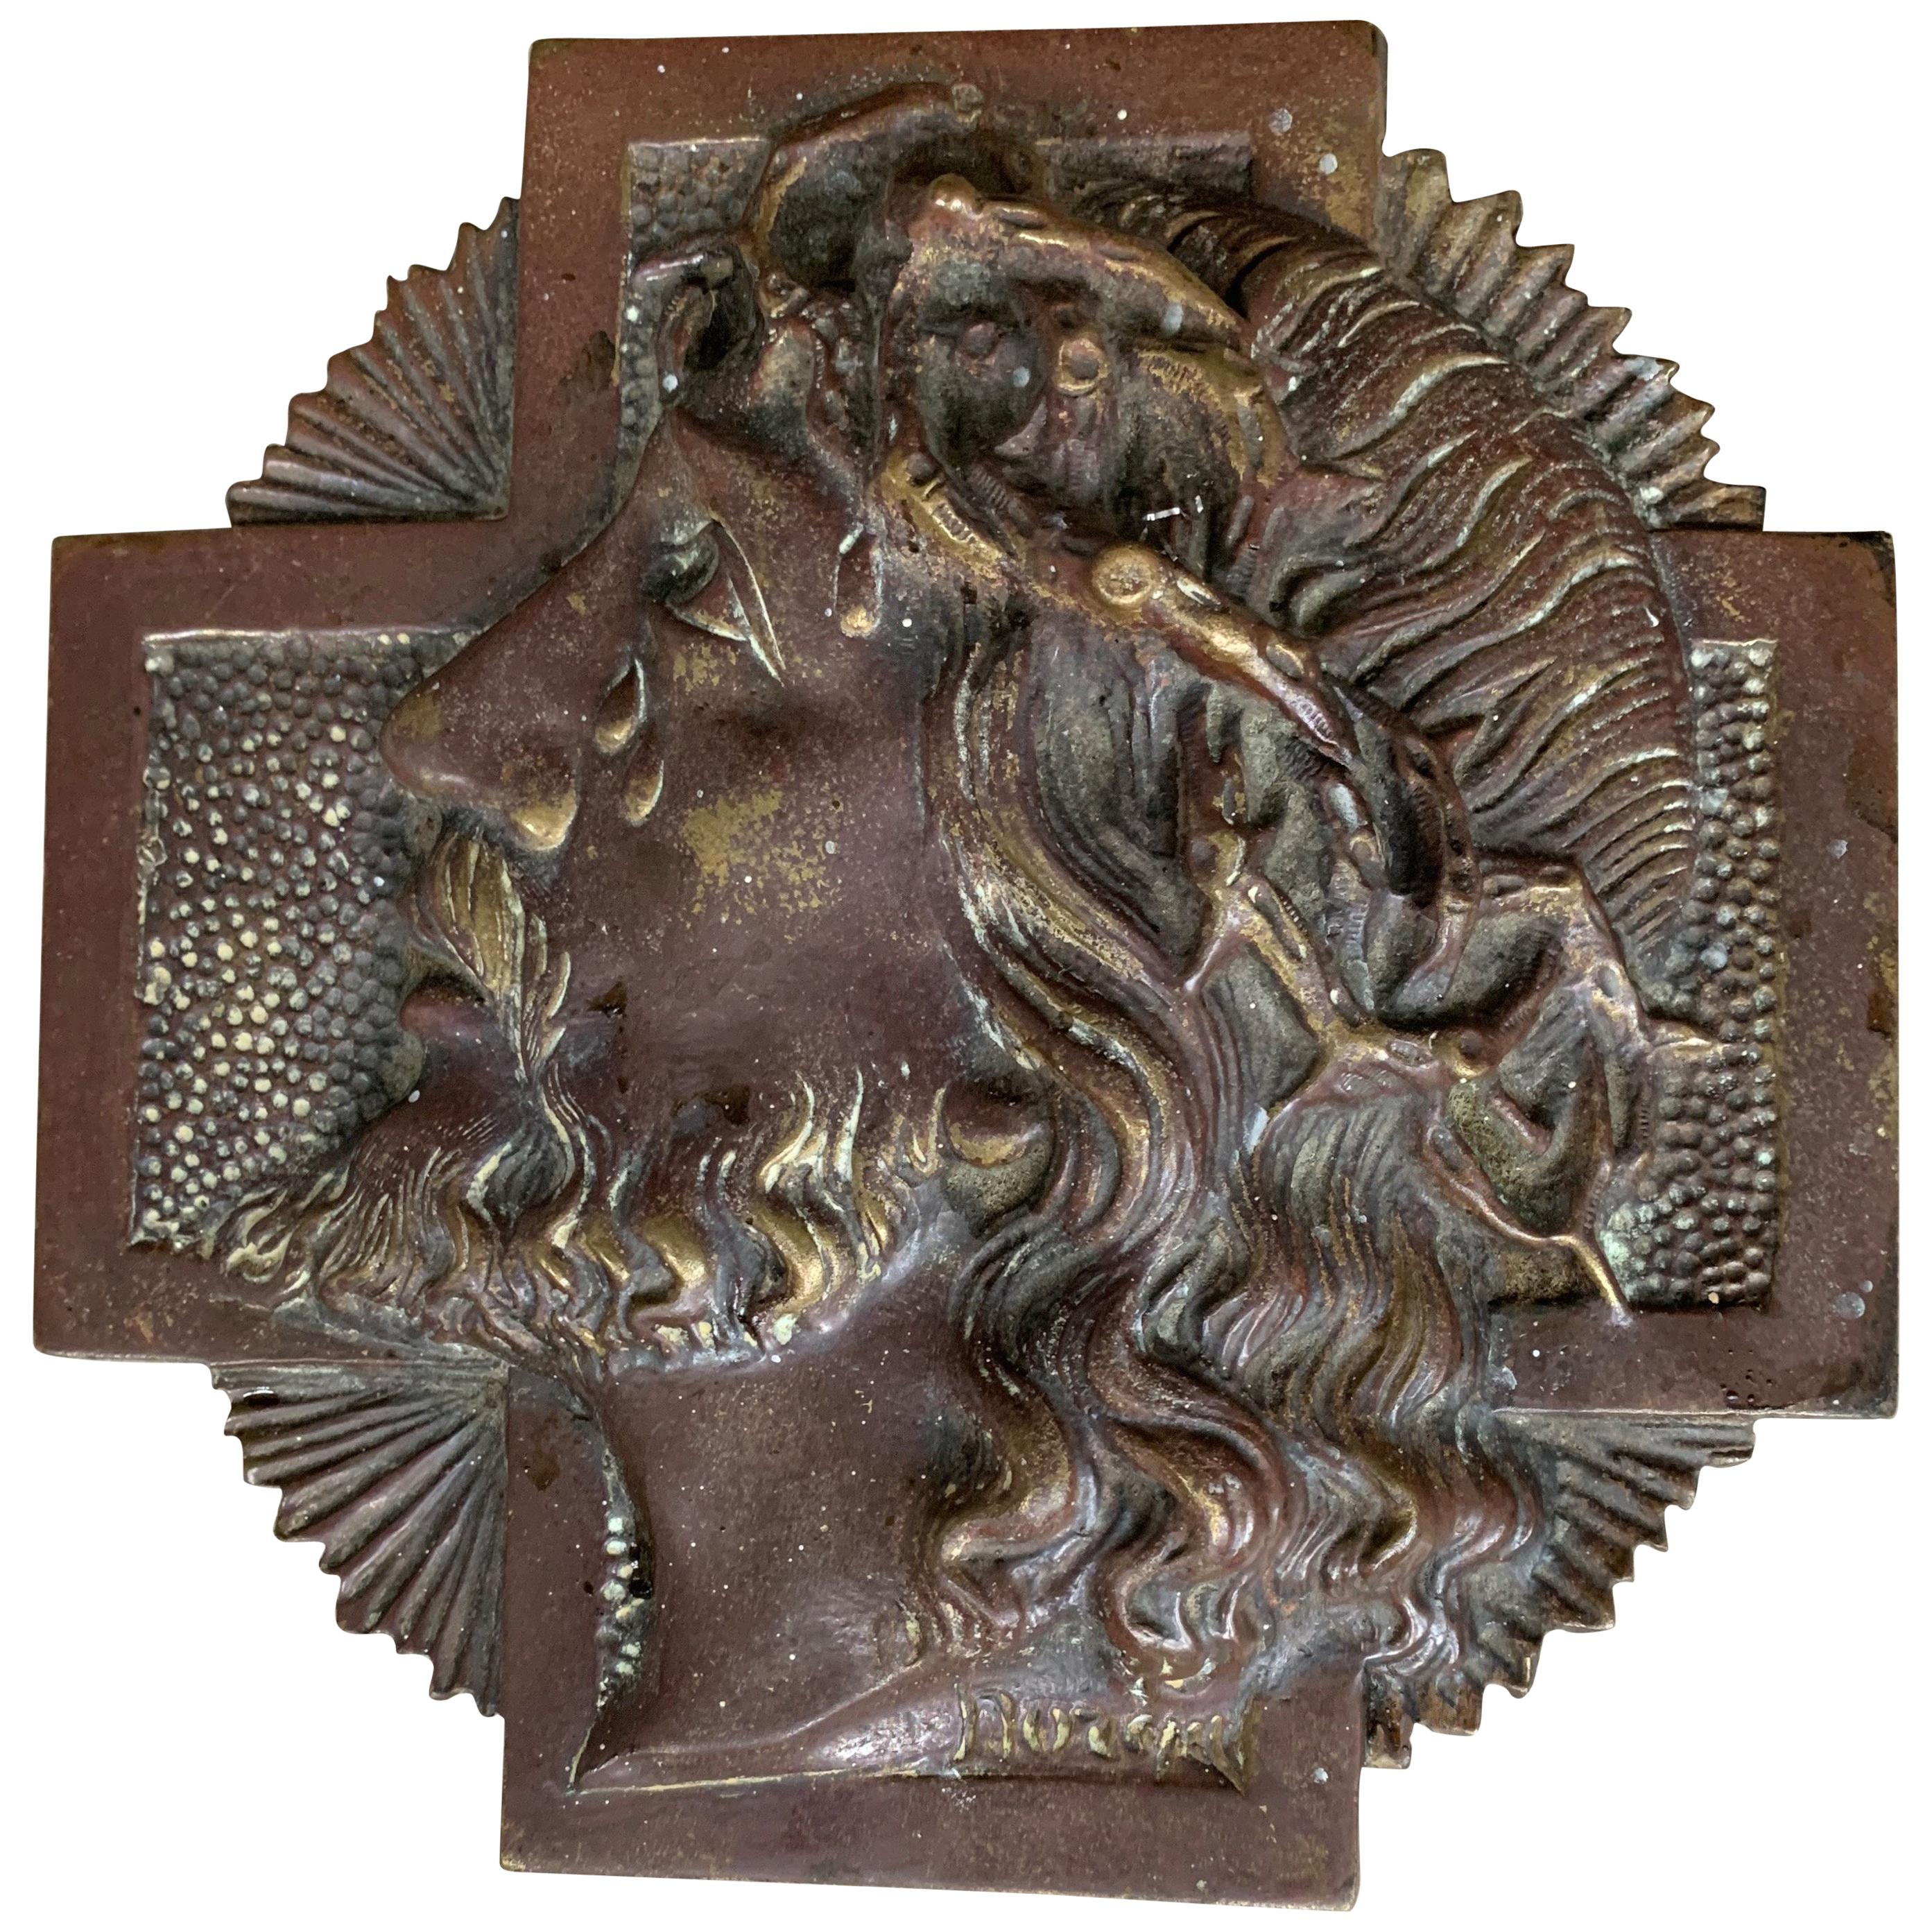 Rare & Signed Sylvain Norga Religious Bronze Plaque of Suffering Christ in Tears